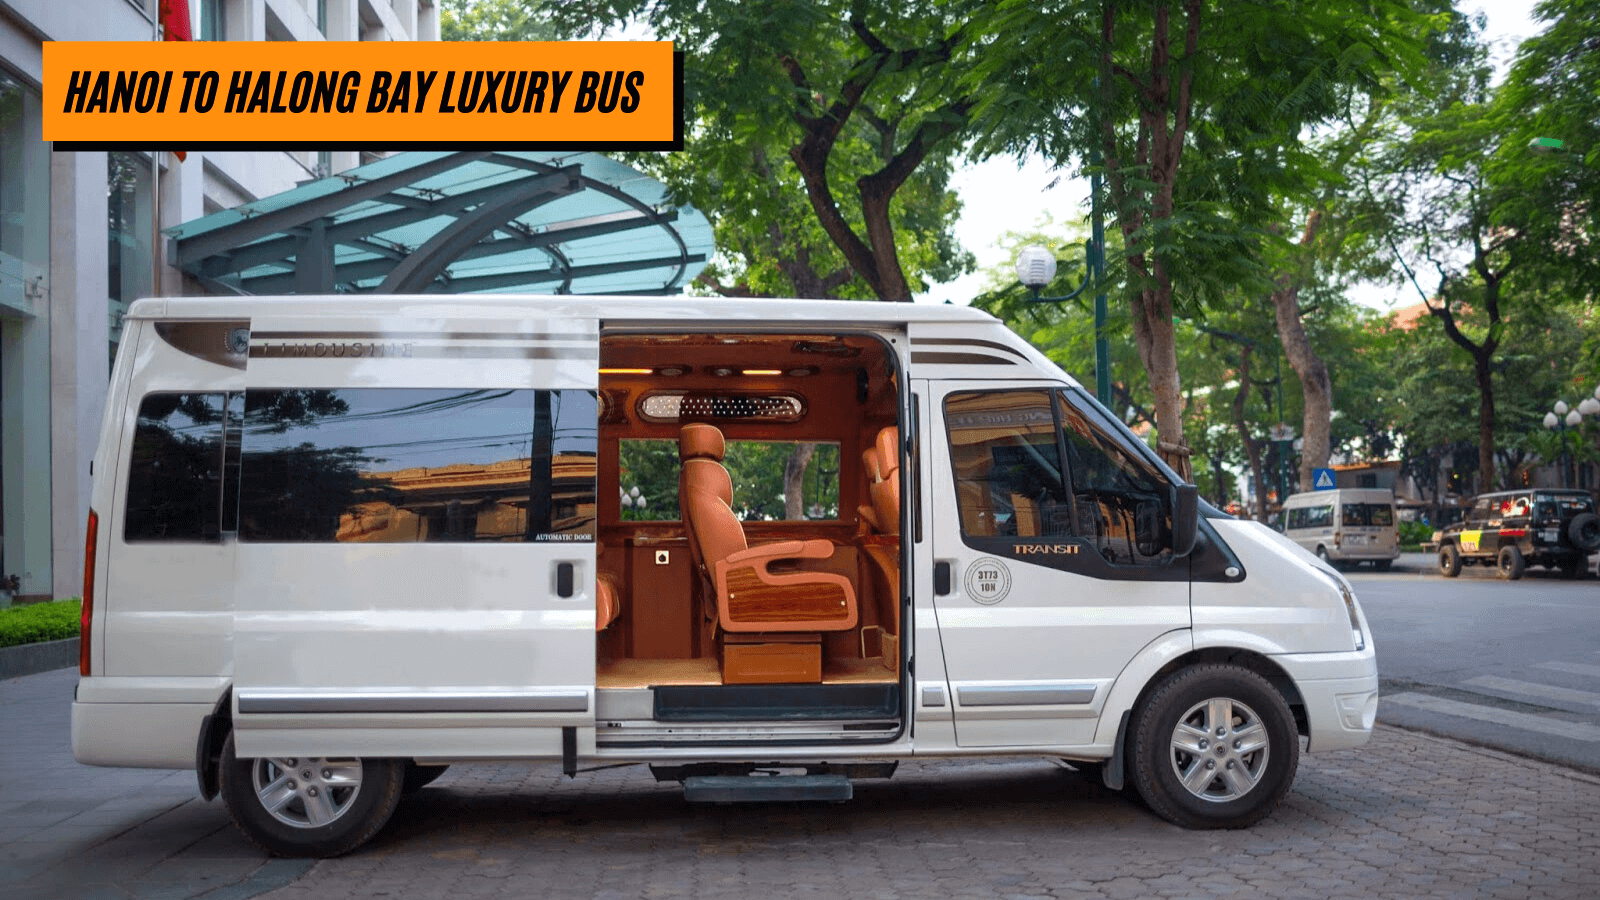 Hanoi to Halong Bay luxury bus